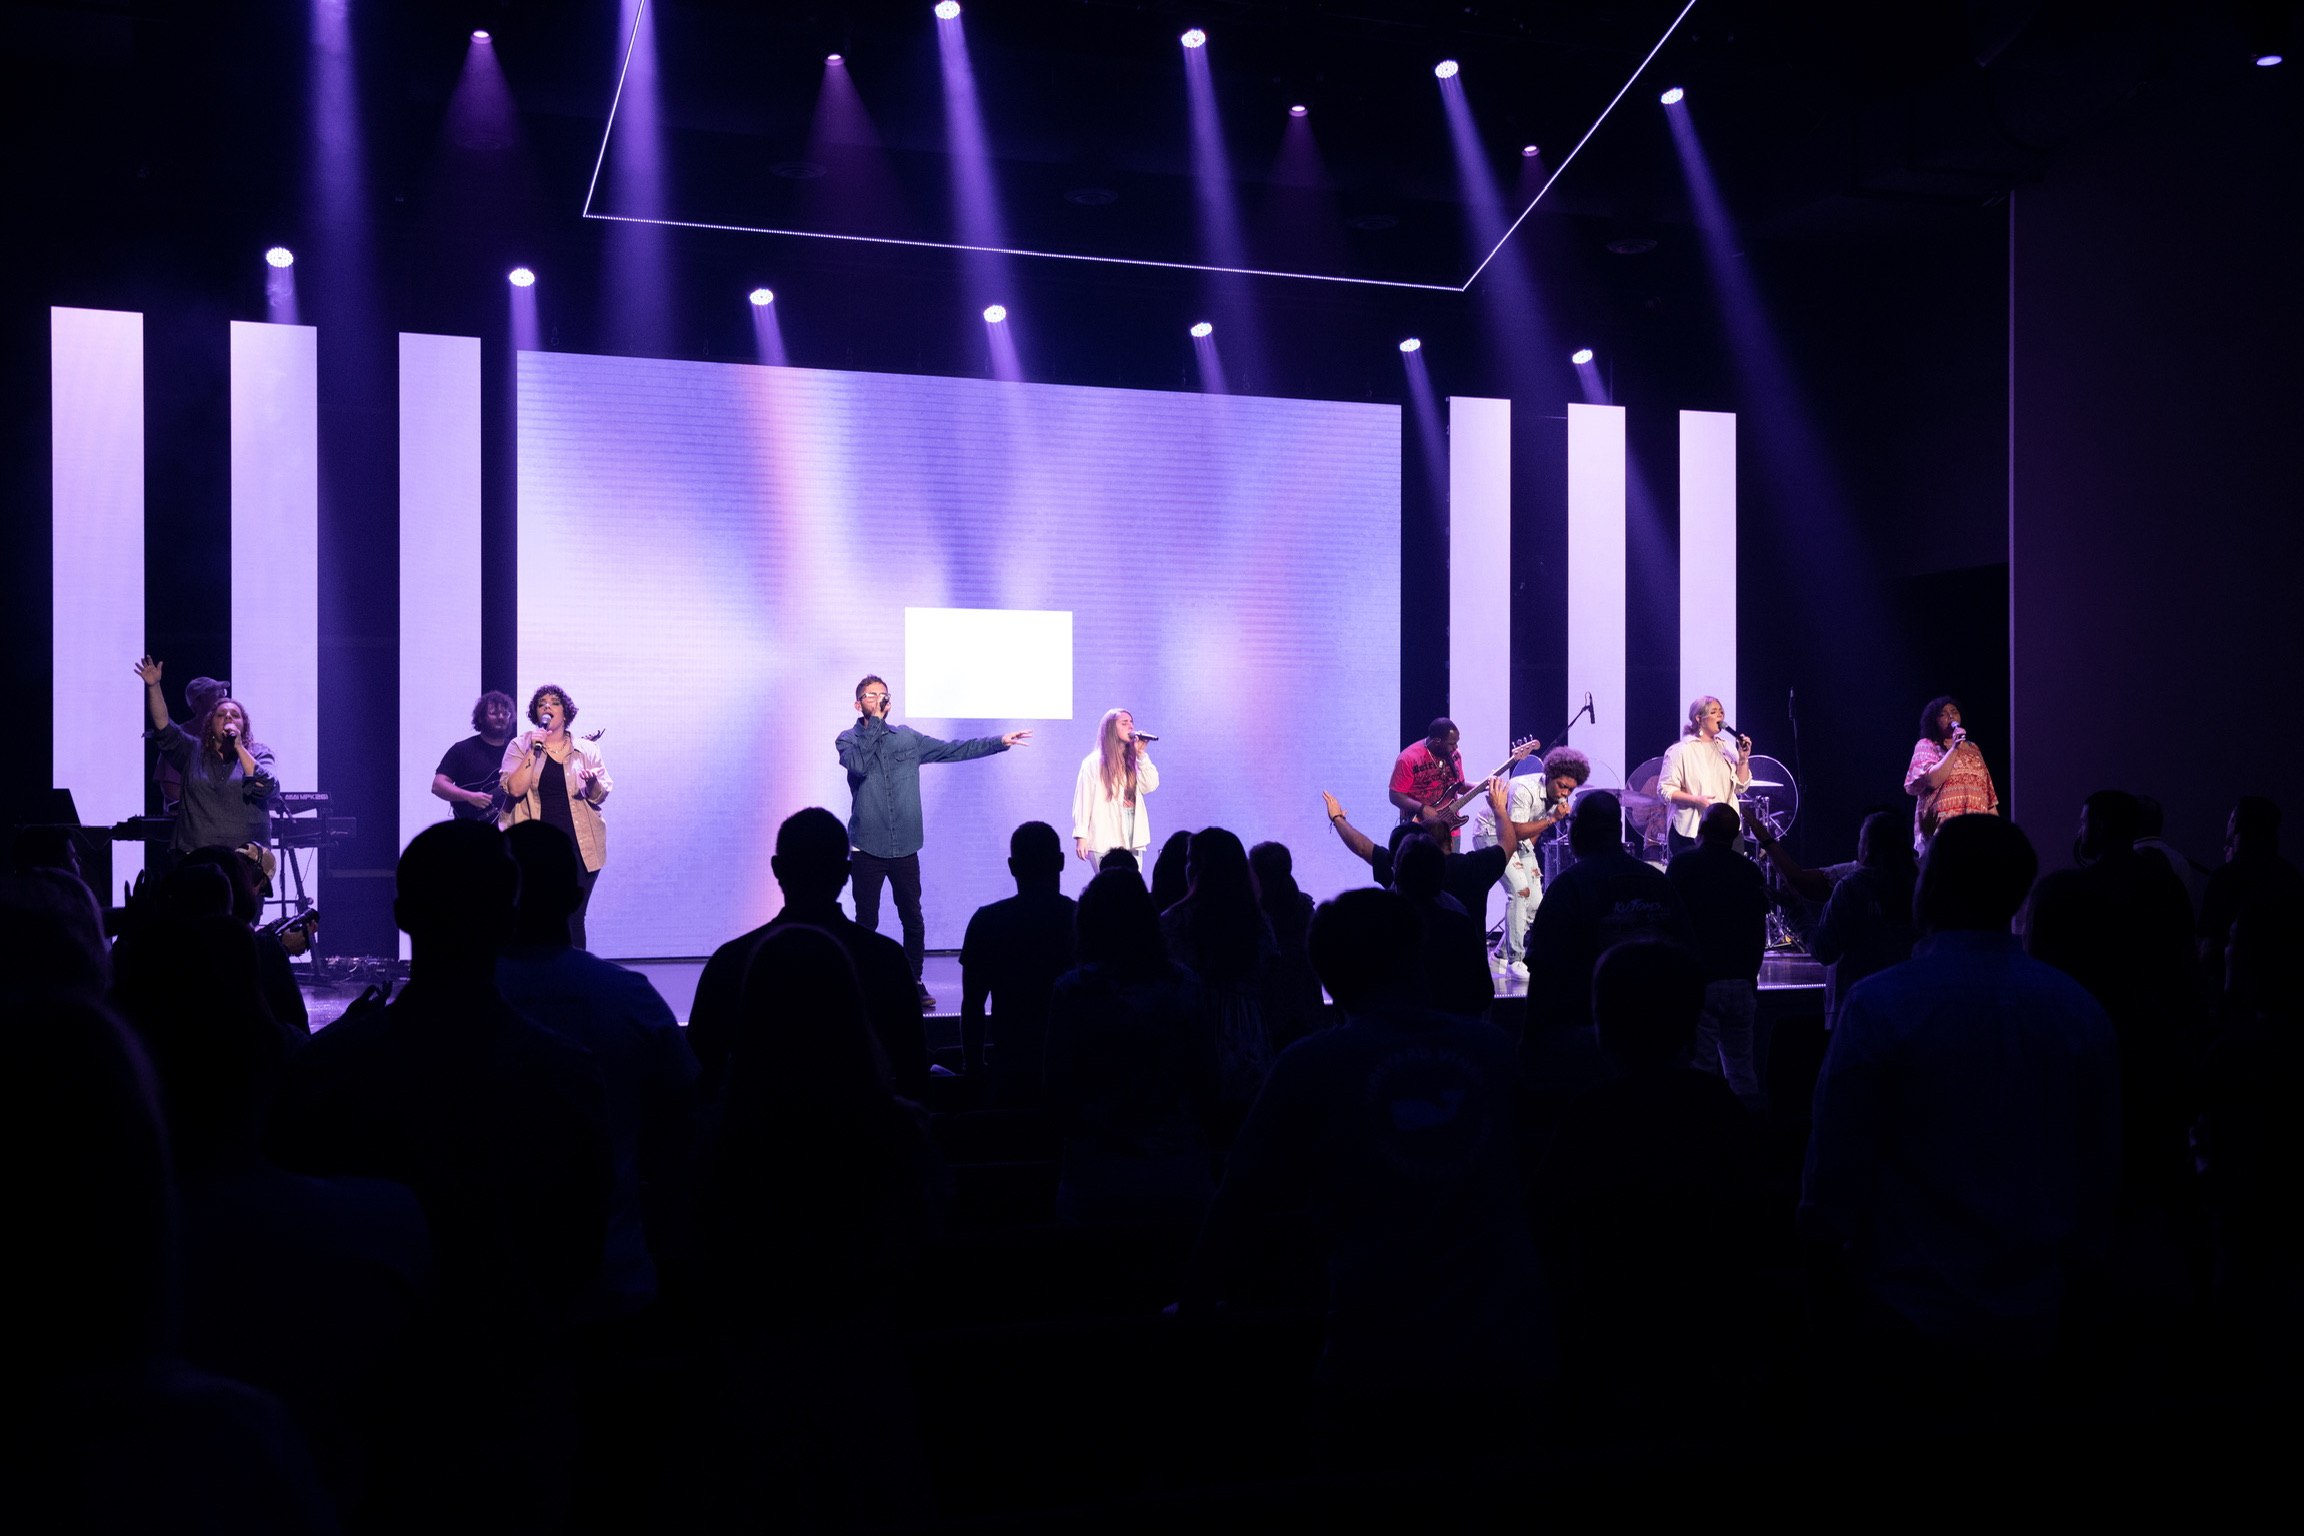 LIFE CO. church auditorium full of people singing and worshipping with a band on stage